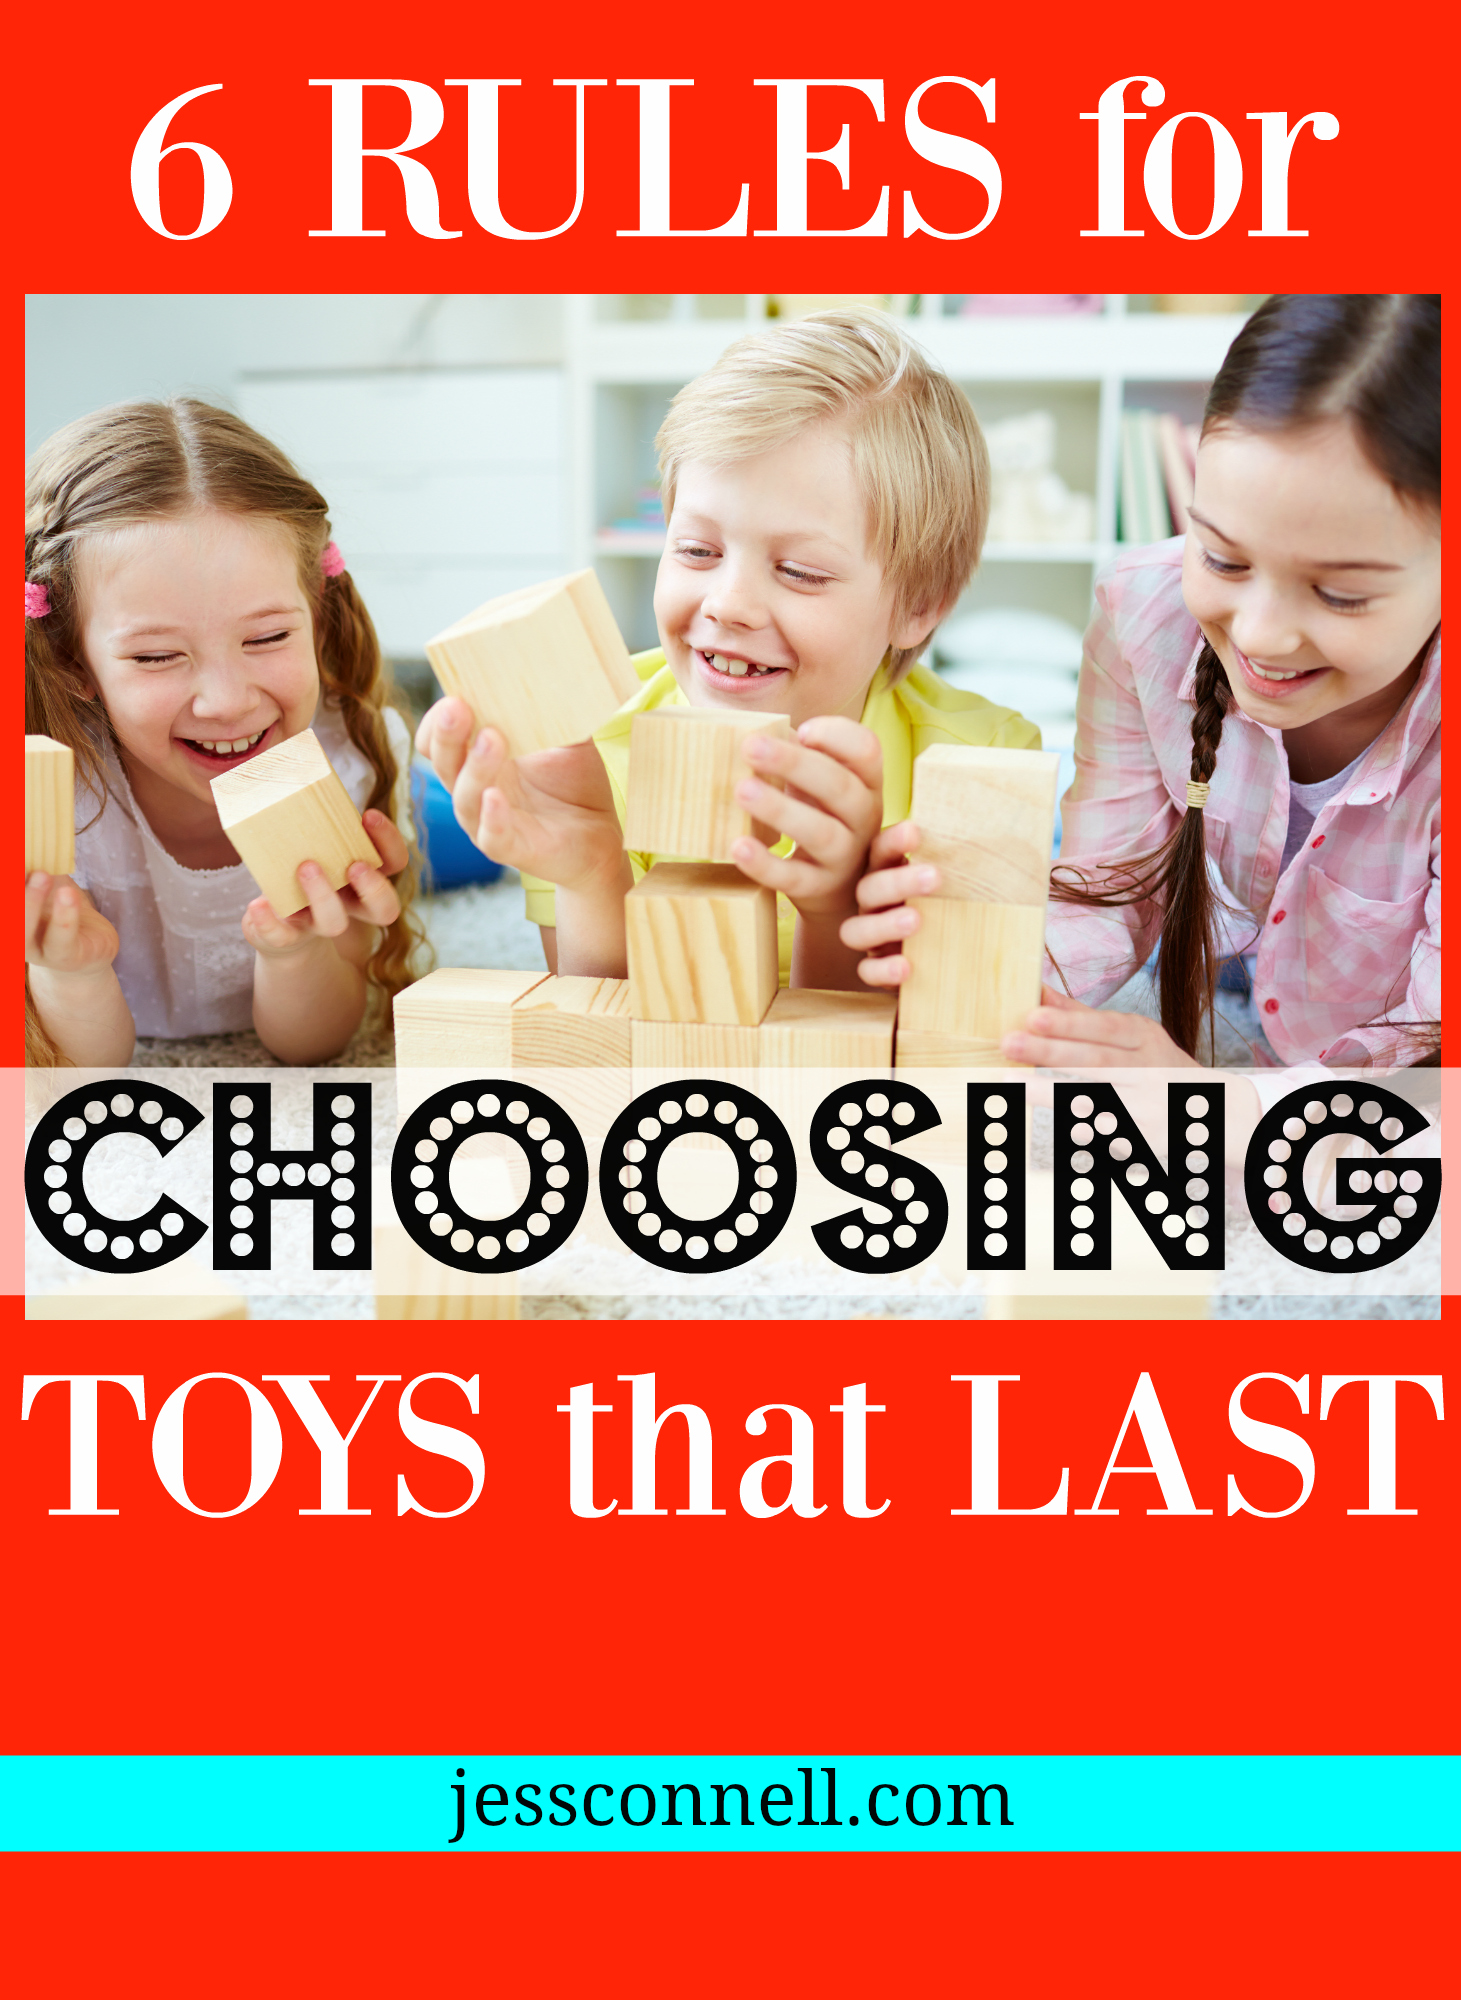 6 Rules for Choosing Toys that Last // jessconnell.com